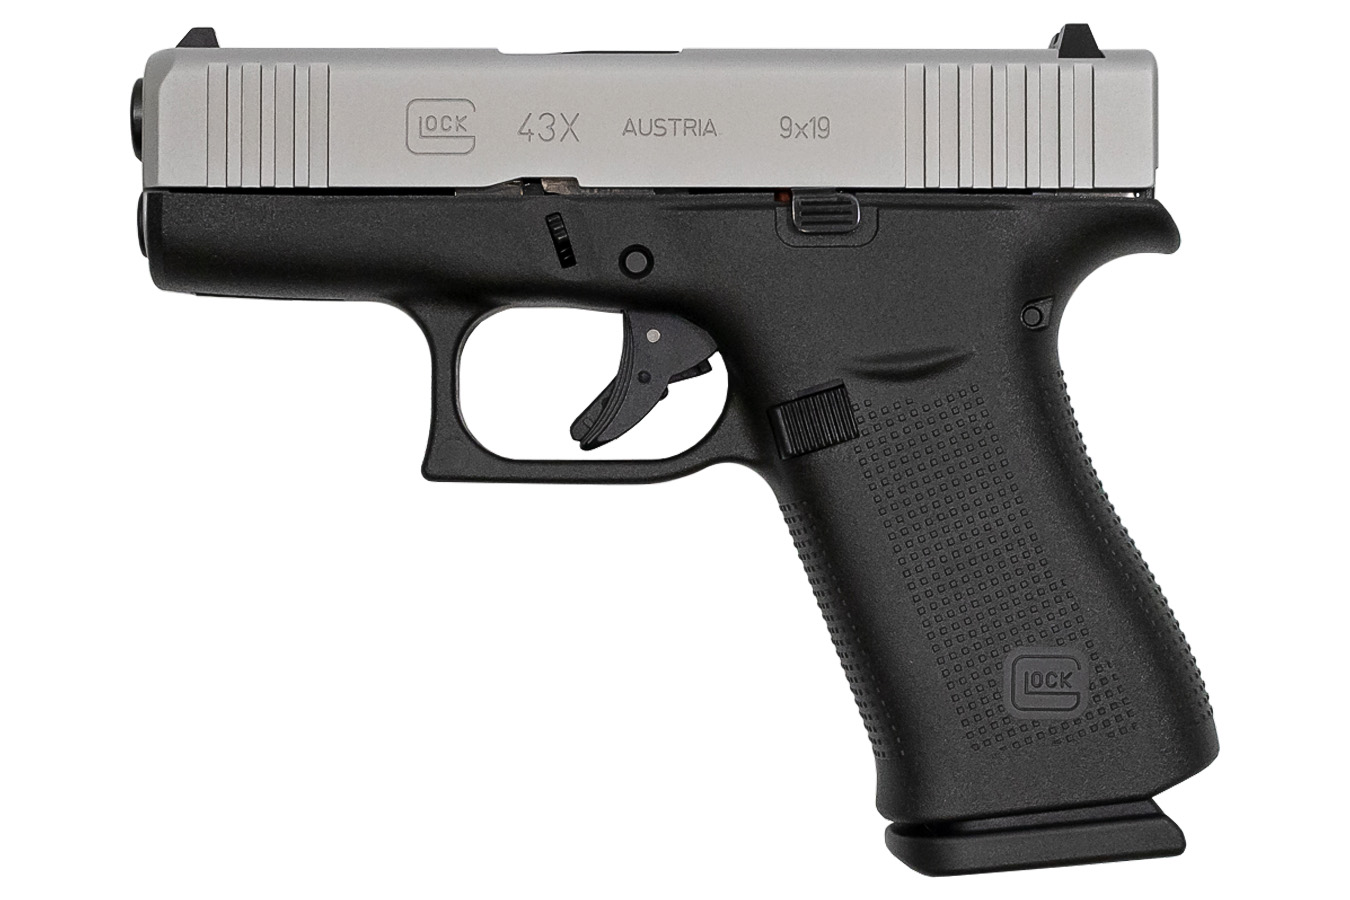 43x 9mm Pistol with Silver Slide (LE)